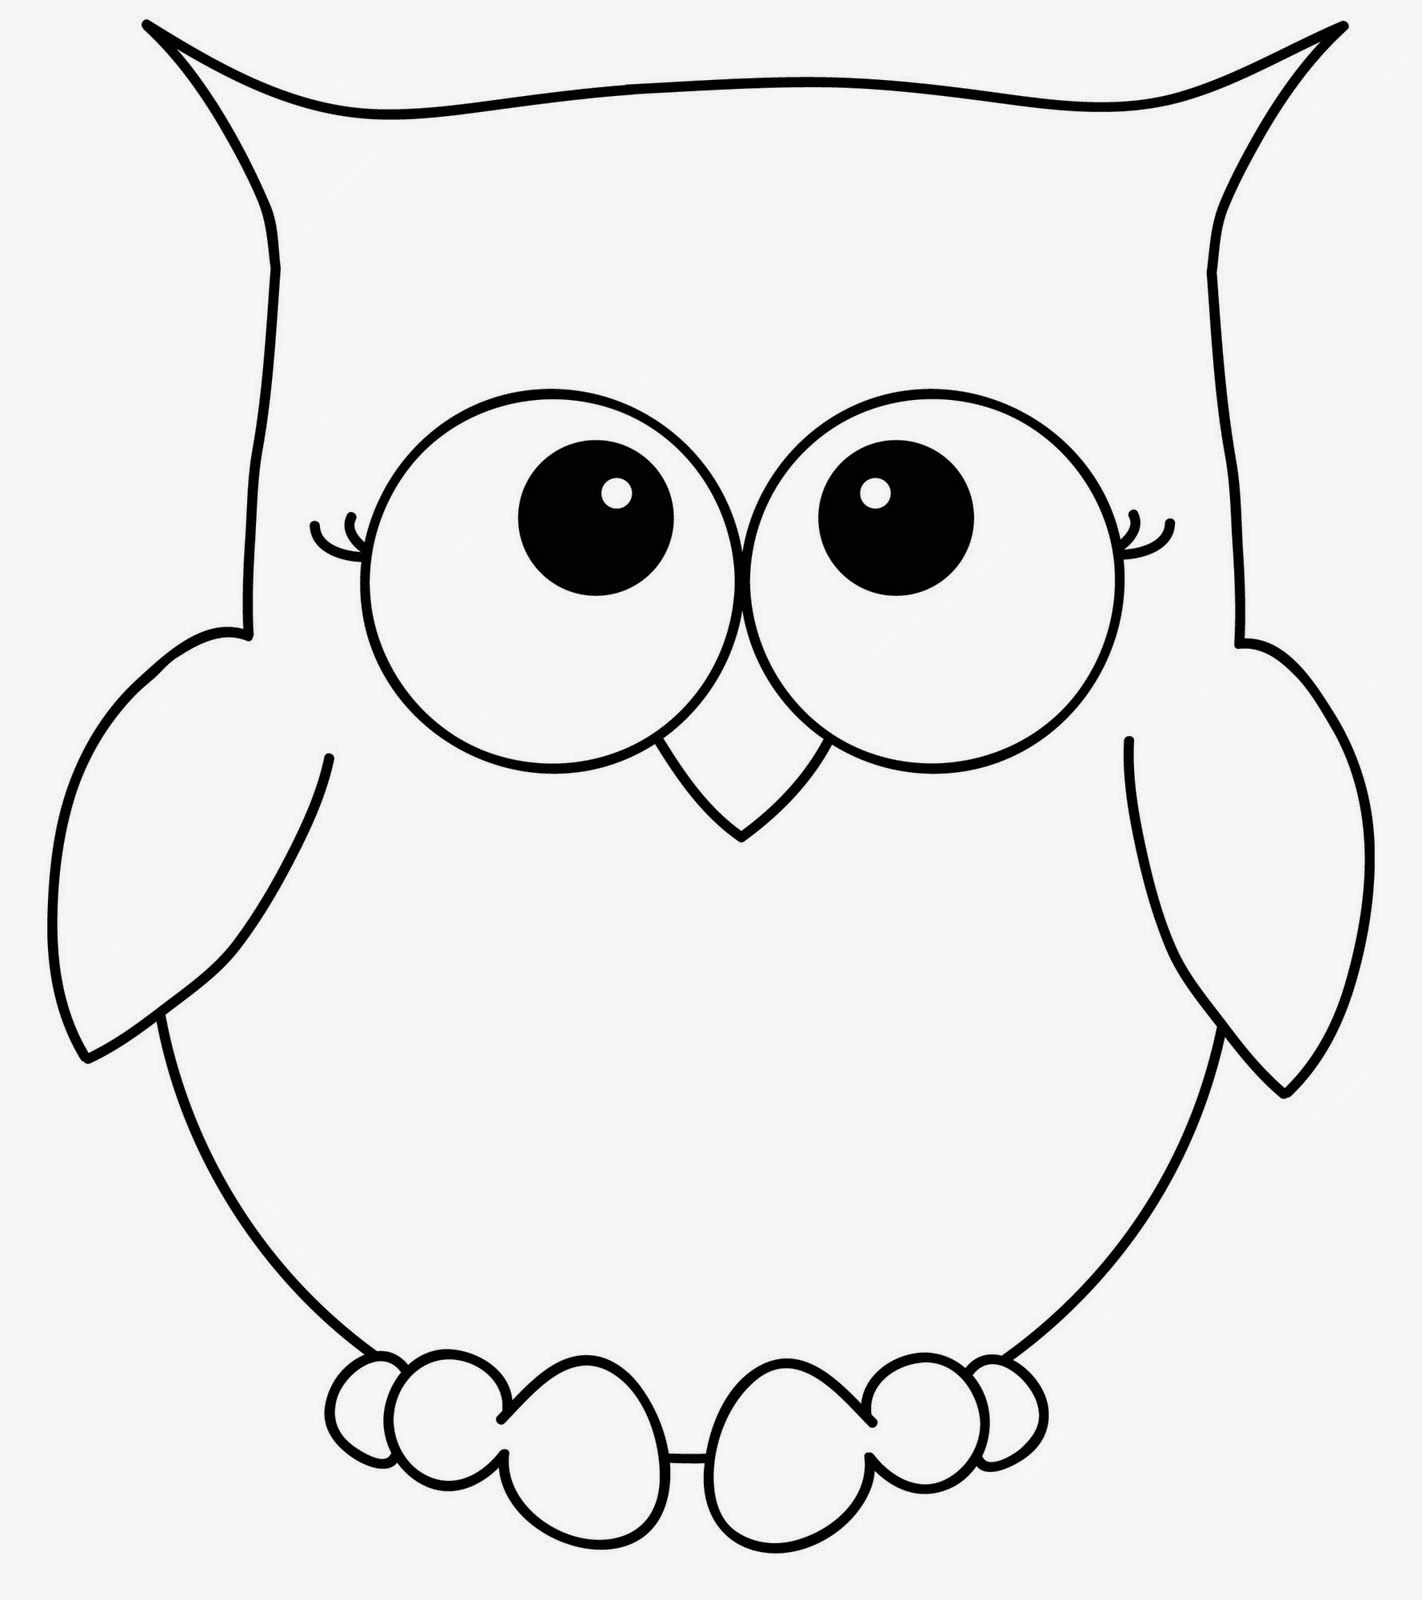 owl templates for sewing - large owl template google search patterns pinterest